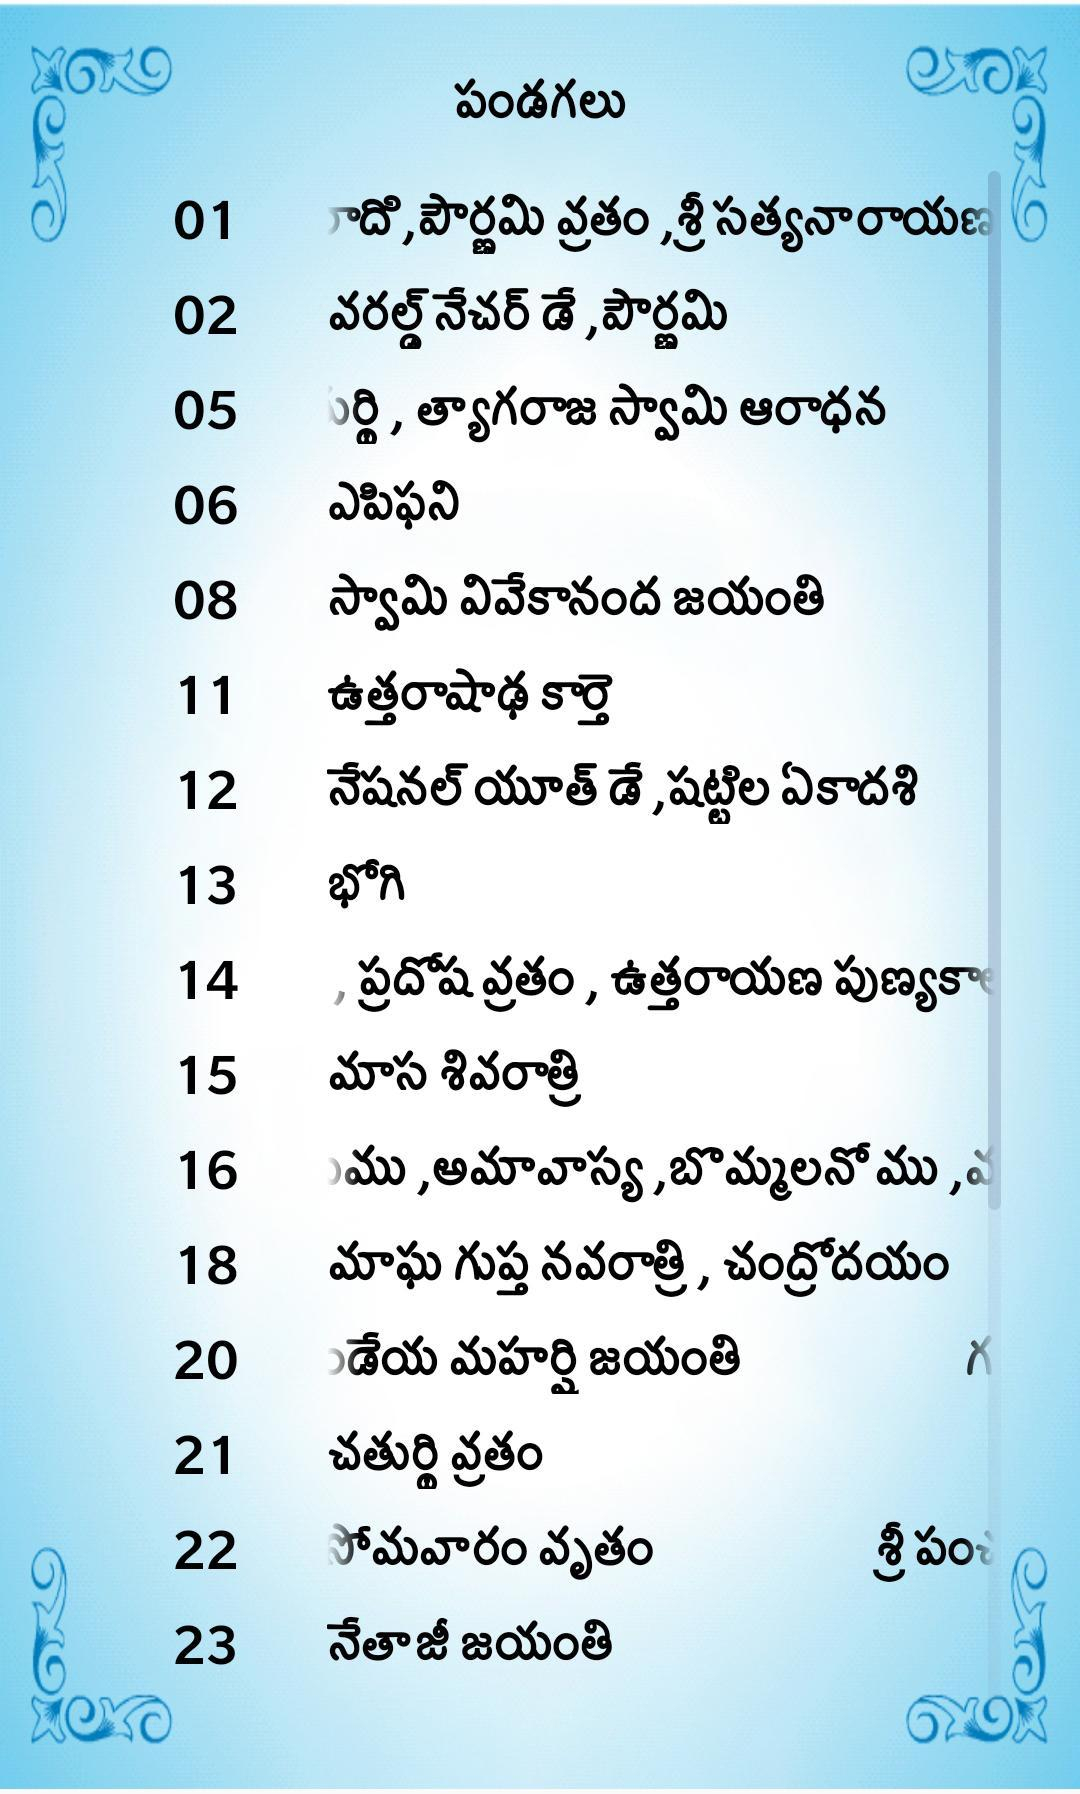 Telugu Calendar 2018 - 2020 (New) For Android - Apk Download